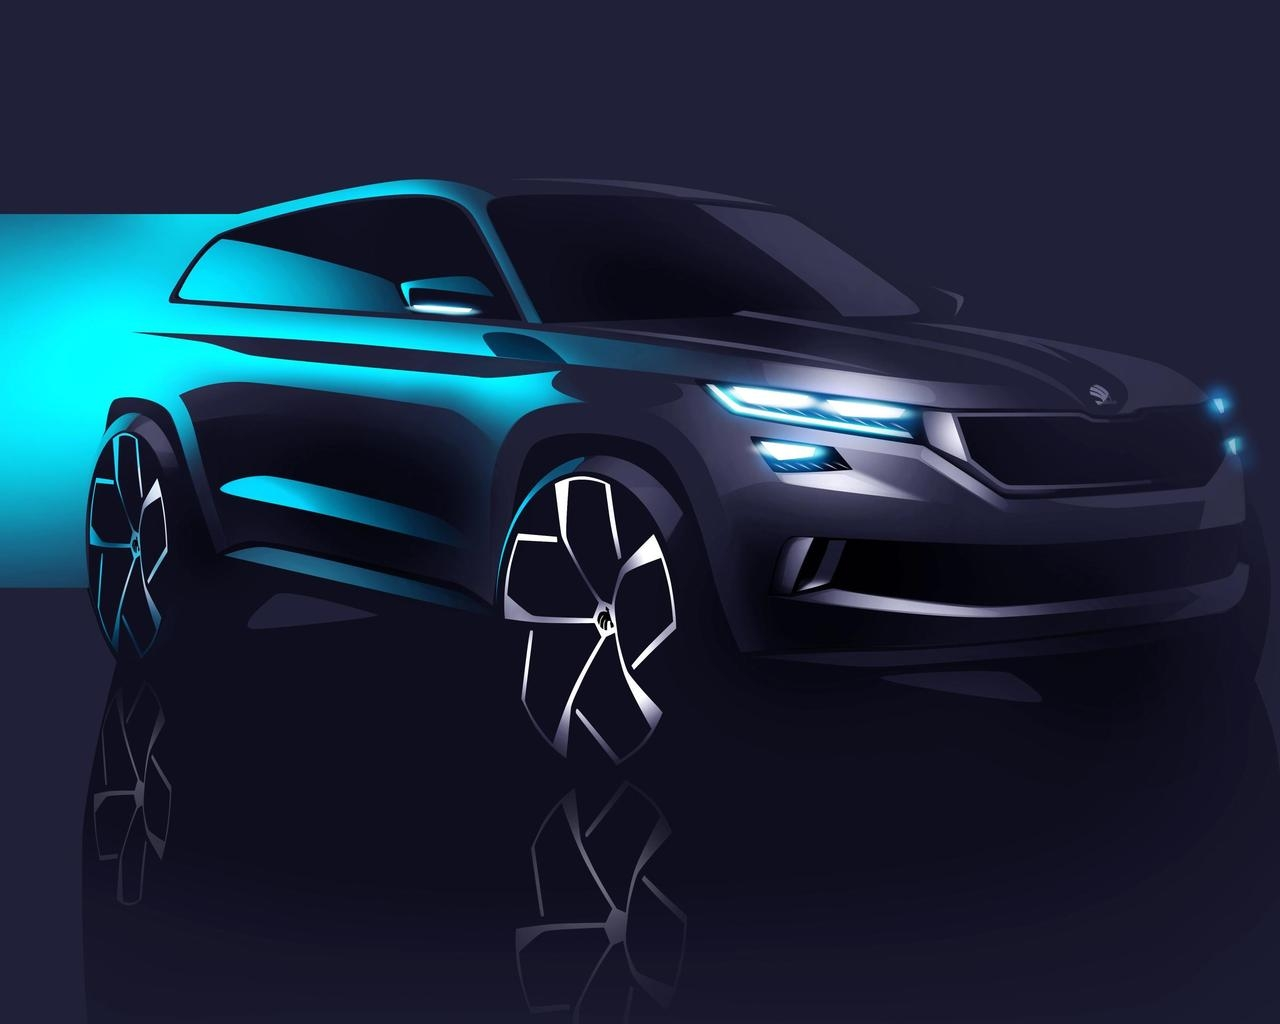 2016 Skoda Visions Concept for 1280 x 1024 resolution